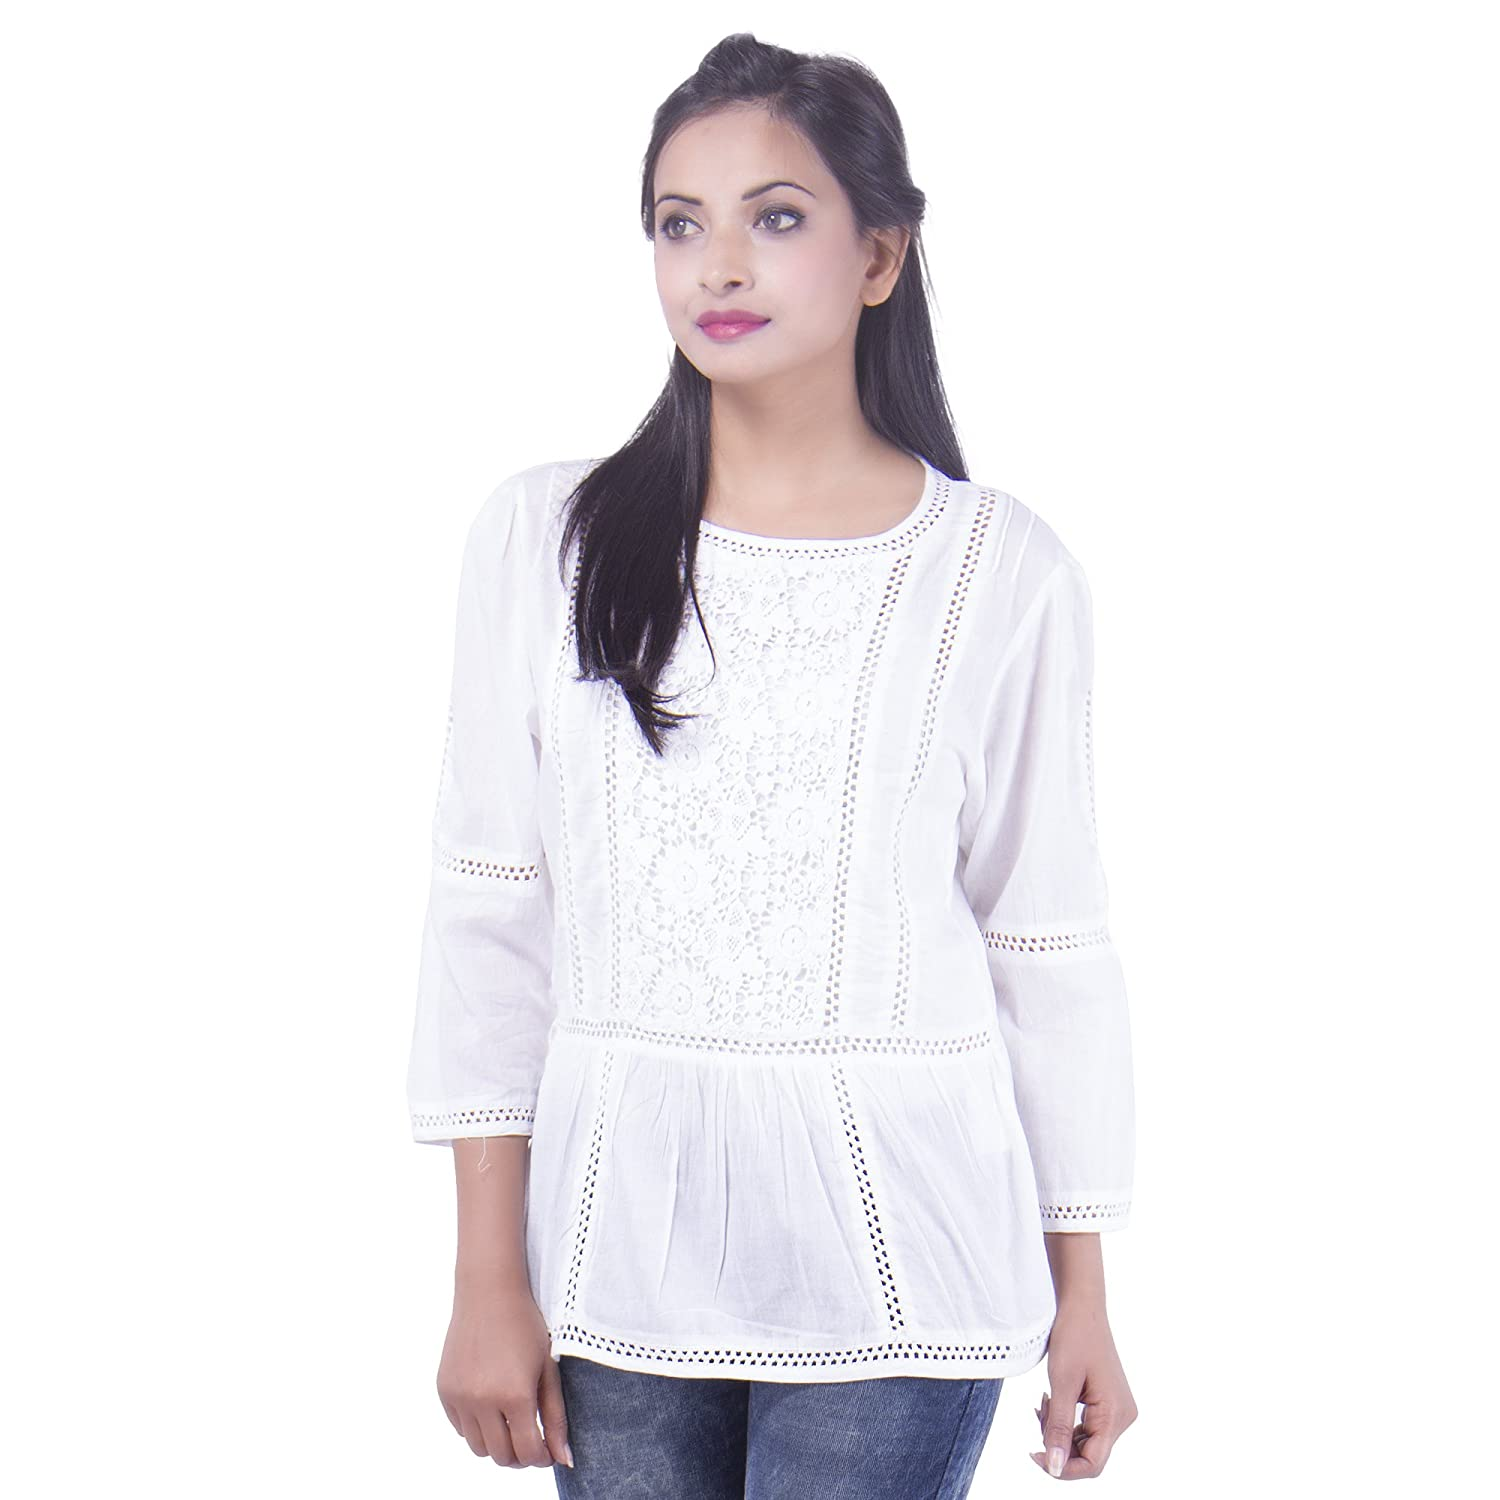 Goodwill impex womens casual wear white top s amazon clothing goodwill impex womens casual wear white top s amazon clothing accessories fandeluxe Gallery